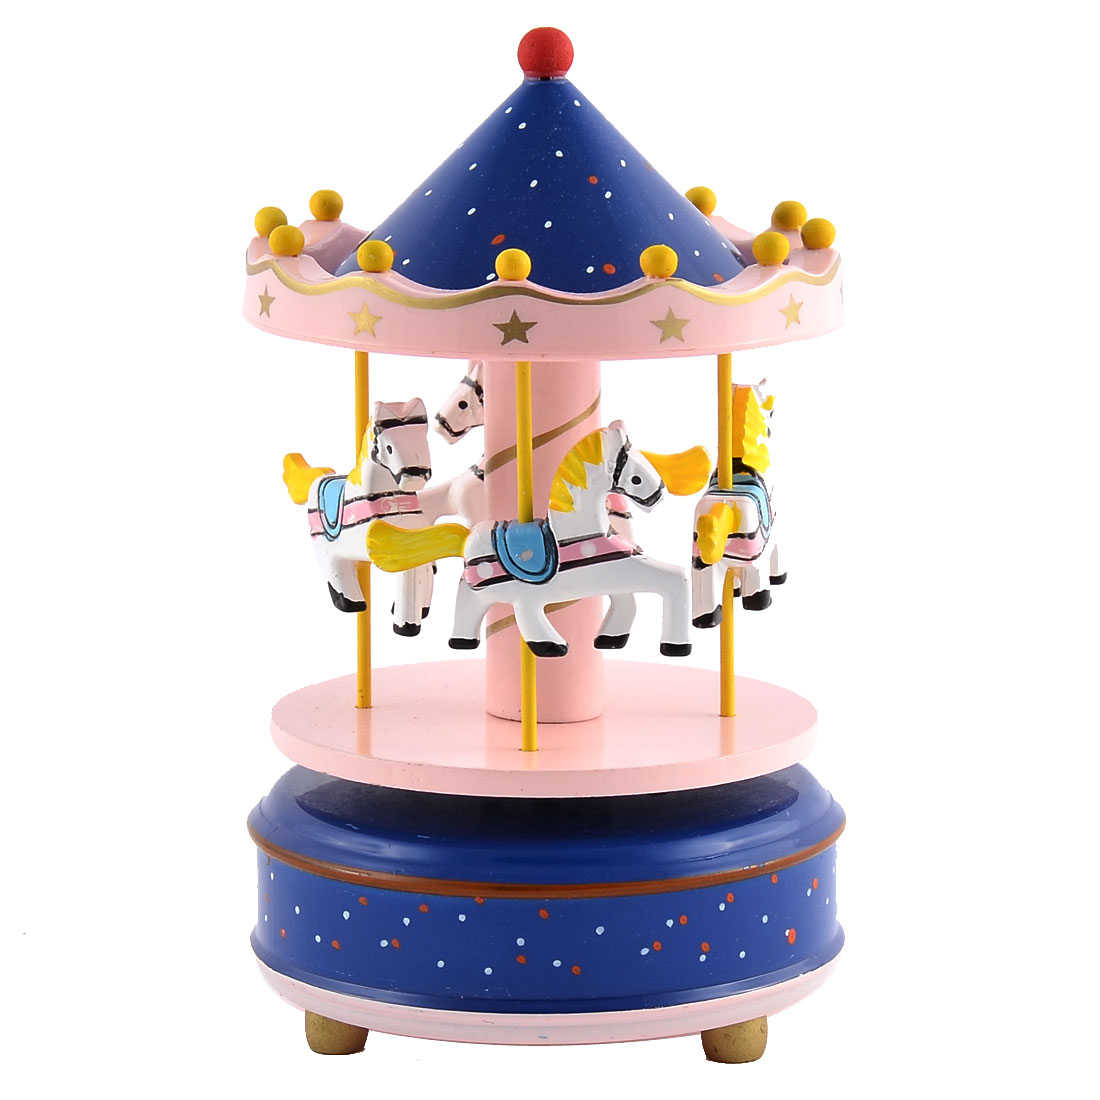 Plastic Shell Dots Pattern 4 Horses Merry-Go-Round Carousel Music Box Blue Pink